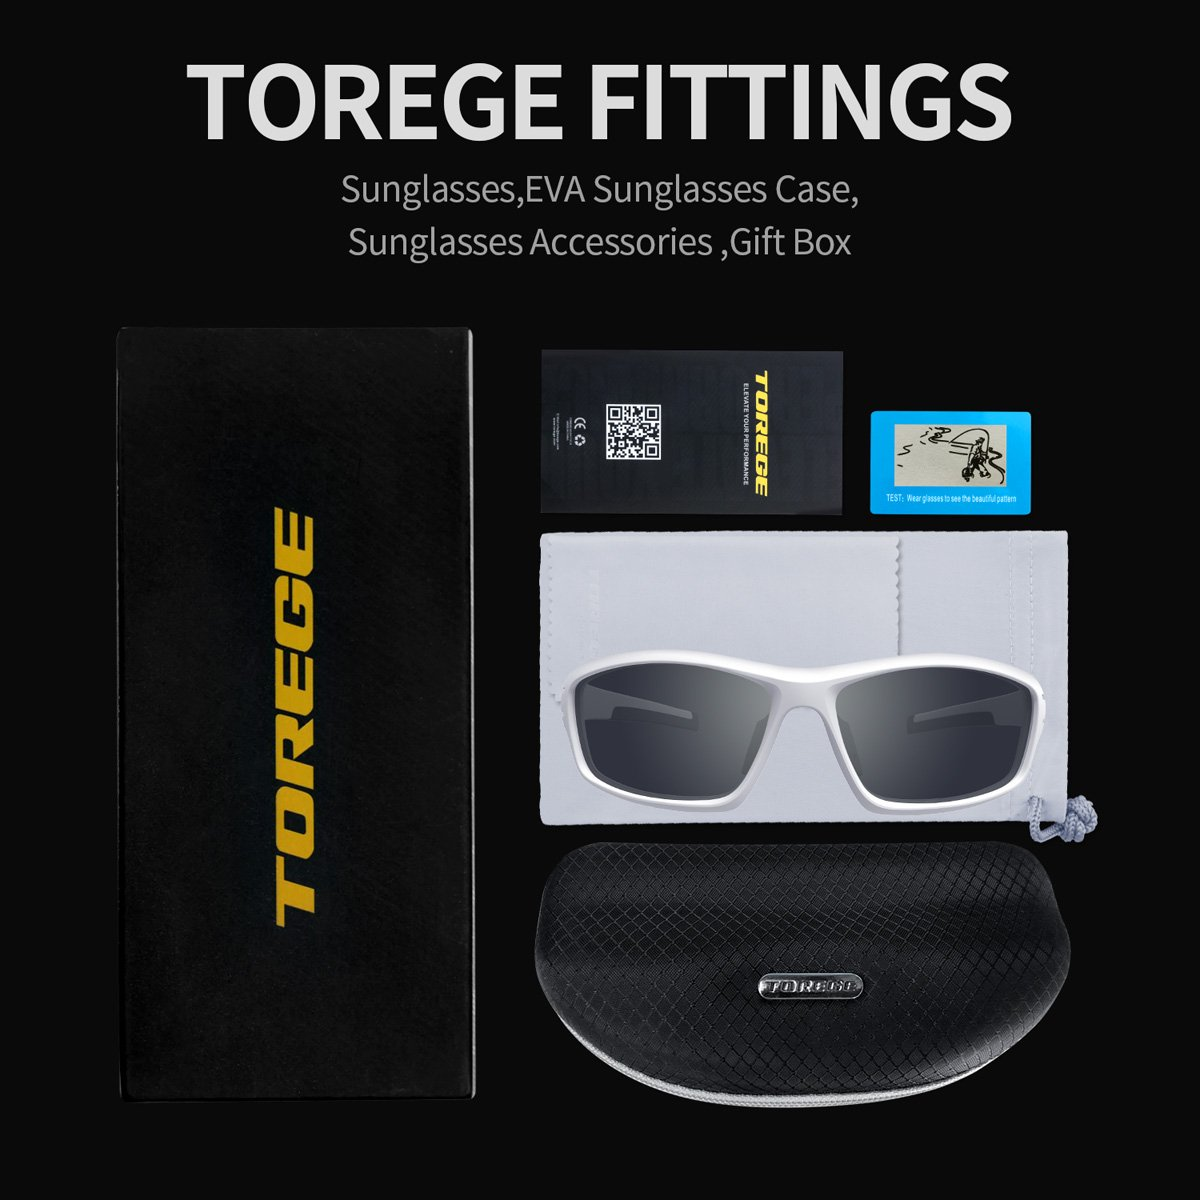 c075605a10 TOREGE Polarized Sports Sunglasses for Man Women Cycling Running Fishing  Golf TR90 Unbreakable Frame TR034 (White Black Tips Gray Lens) - TR-034-C3  ...